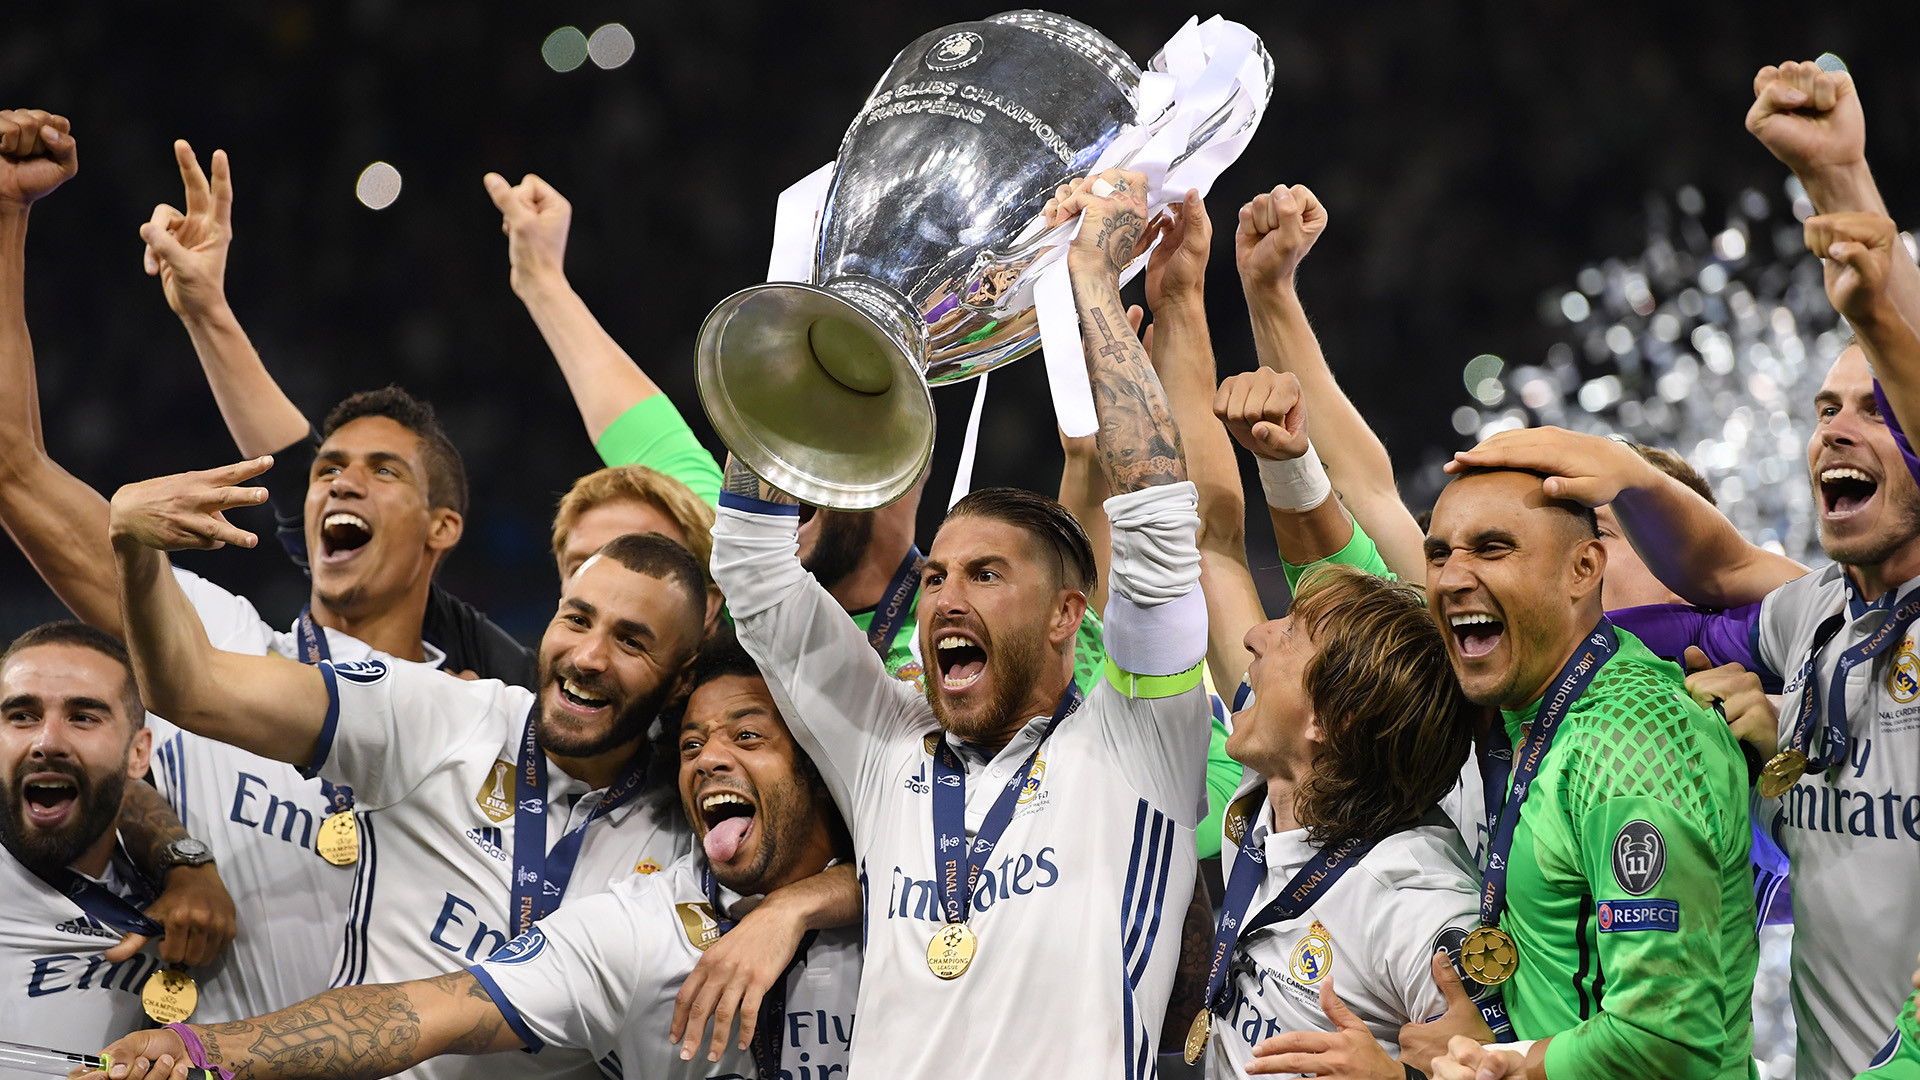 Real madrid wallpaper 2018 72 images - Real madrid pictures wallpapers 2017 ...